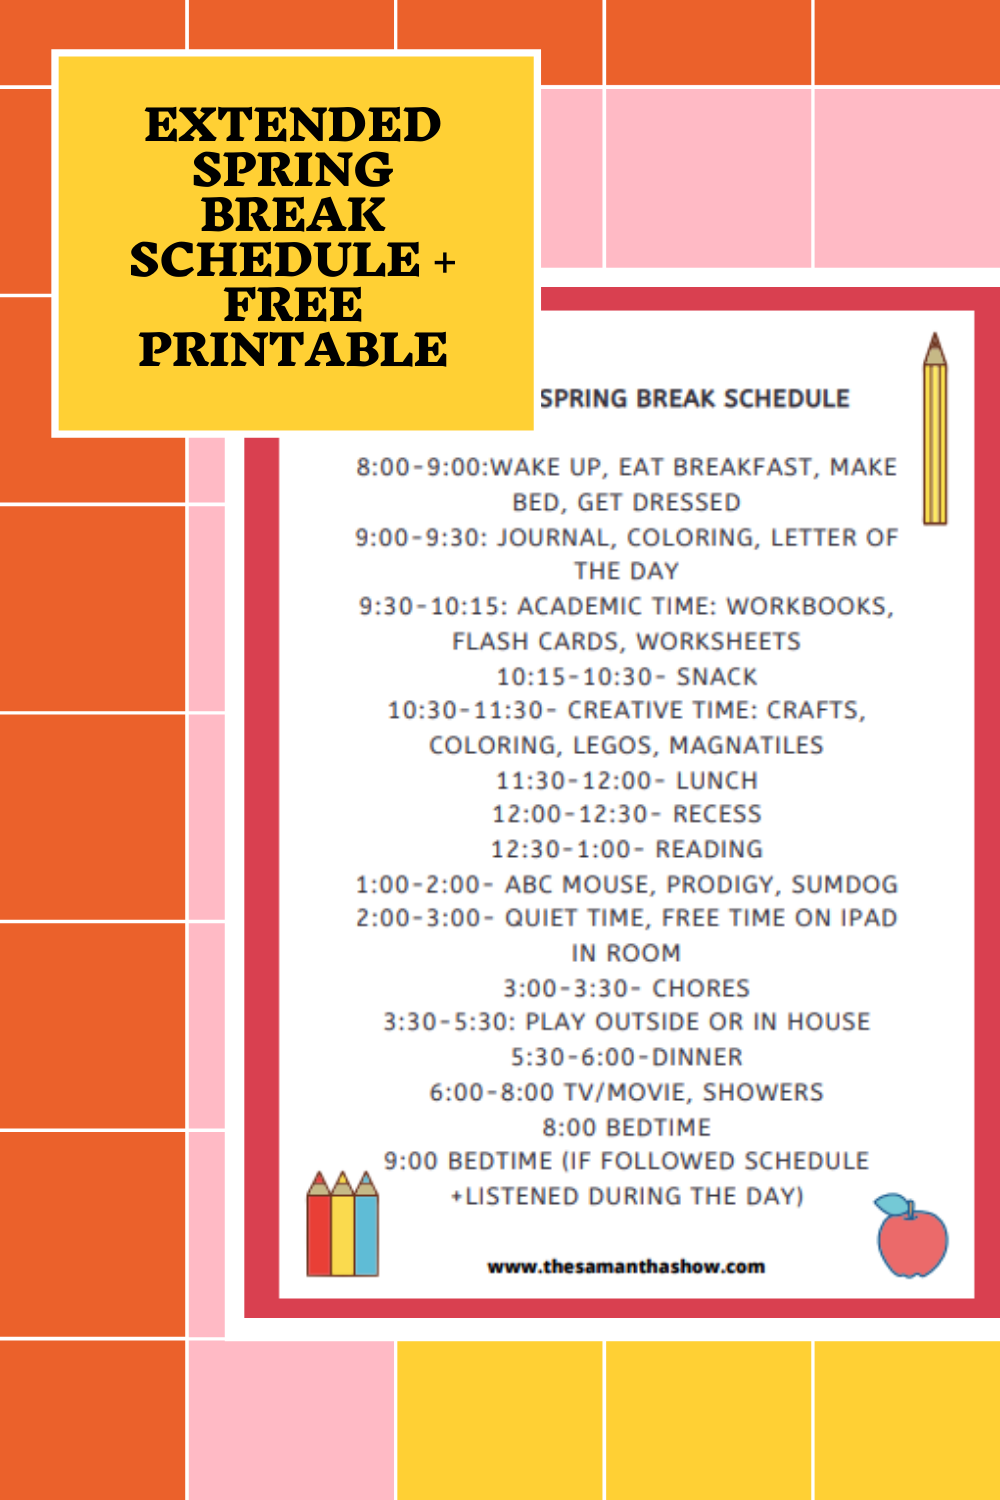 extended spring break schedule + free printable